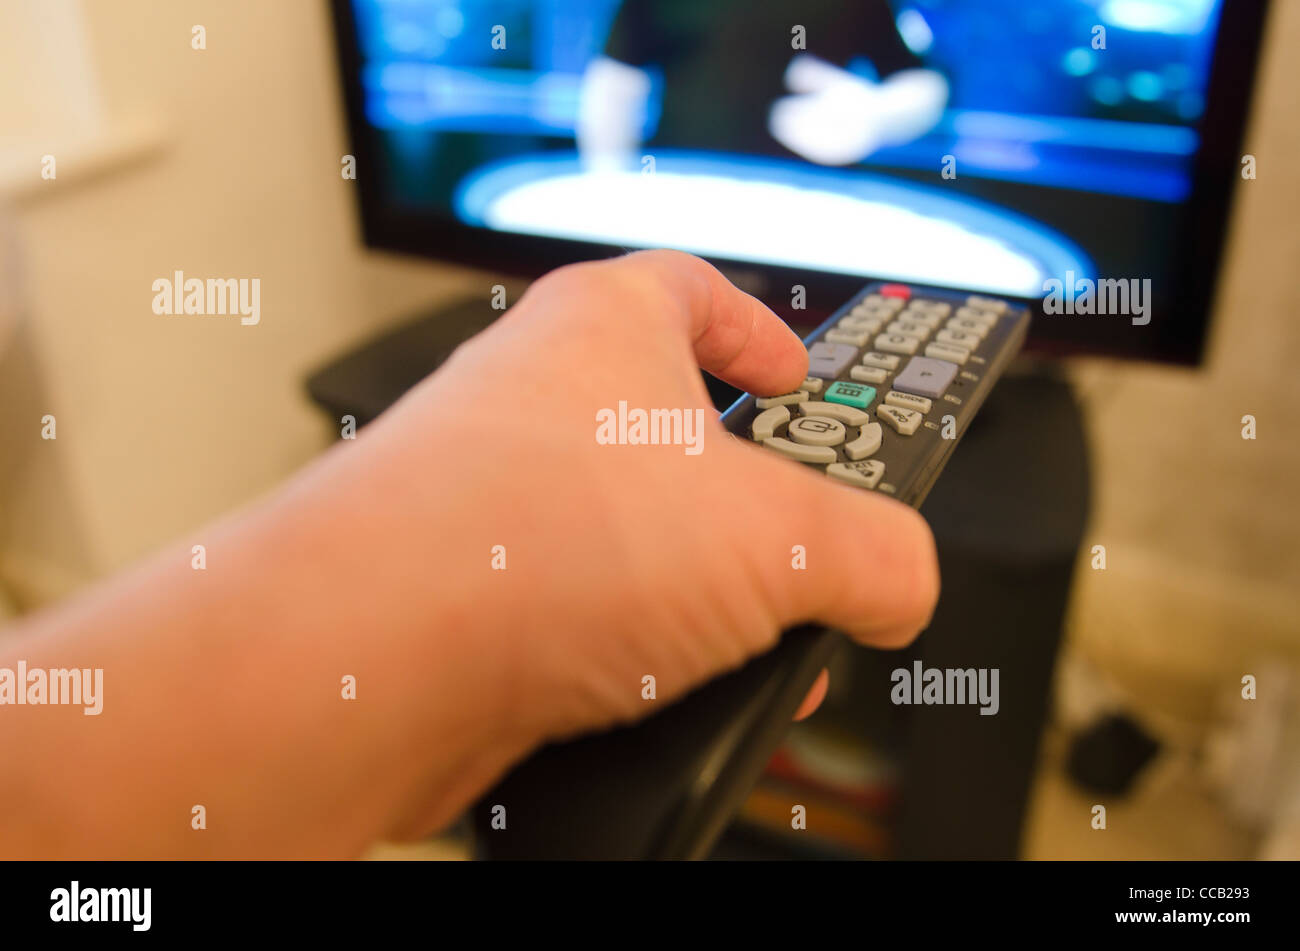 Using the tv remote control. Picture by Pete Gawlik. - Stock Image